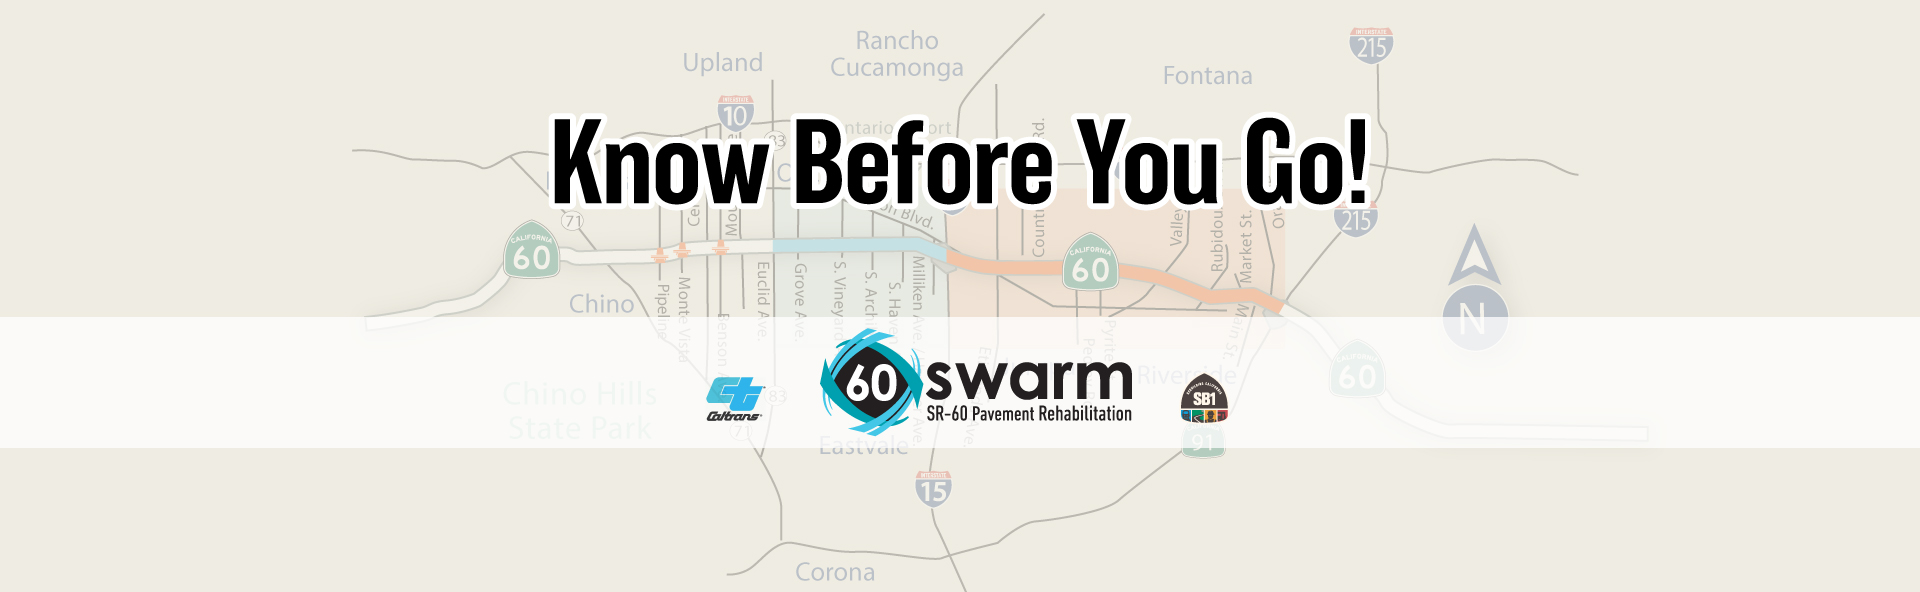 Know before you go - 60 swarm road closures